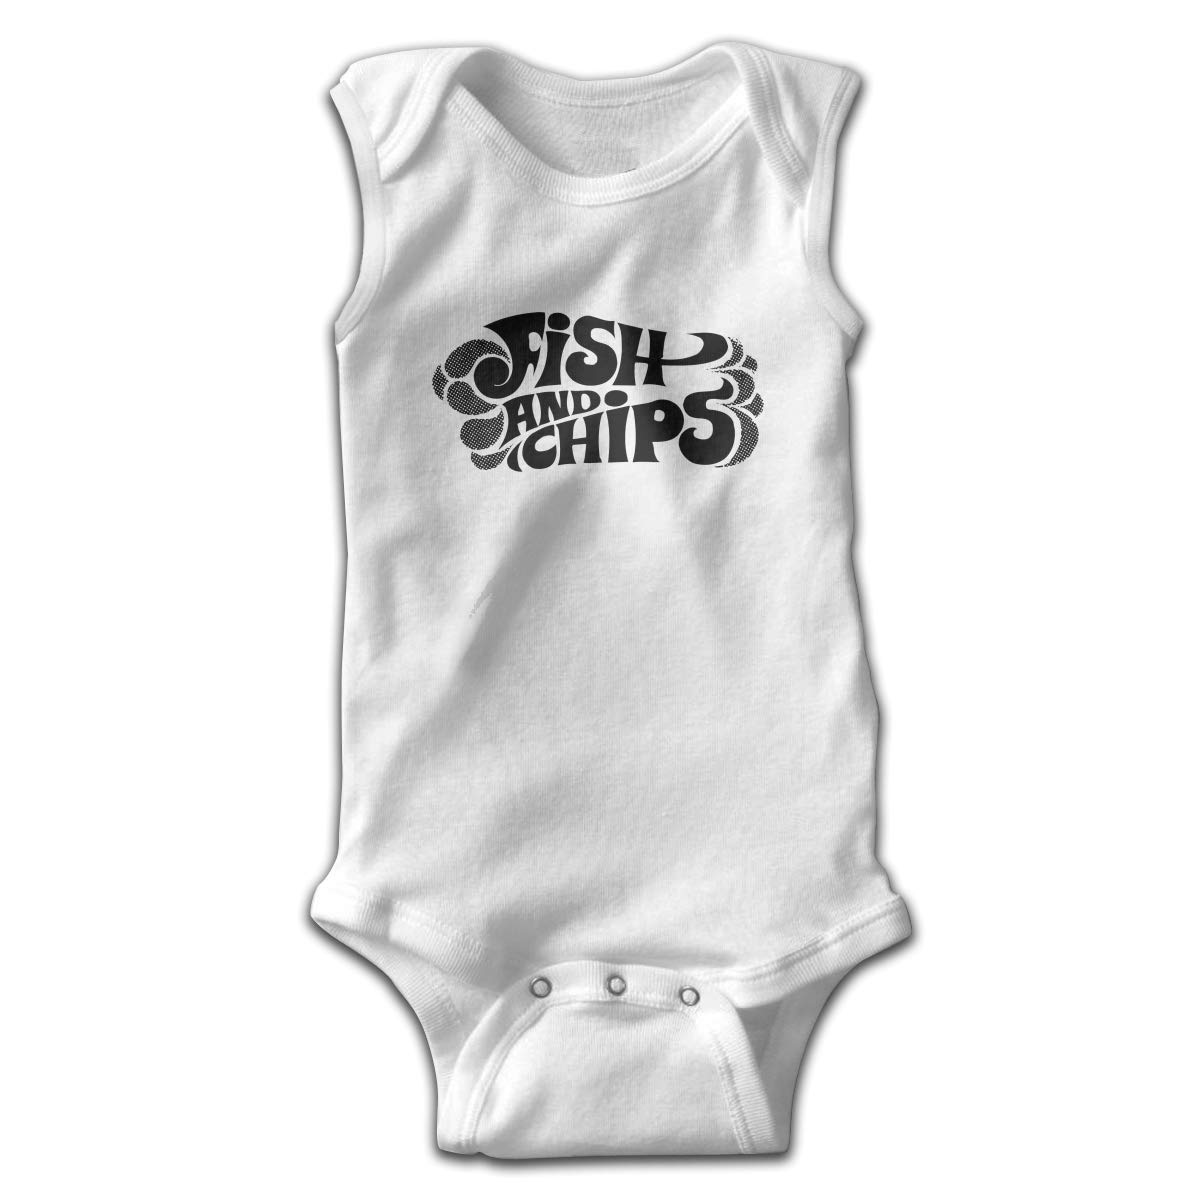 Dfenere Fish and Chip Newborn Baby No Sleeve Bodysuit Romper Infant Summer Clothing White